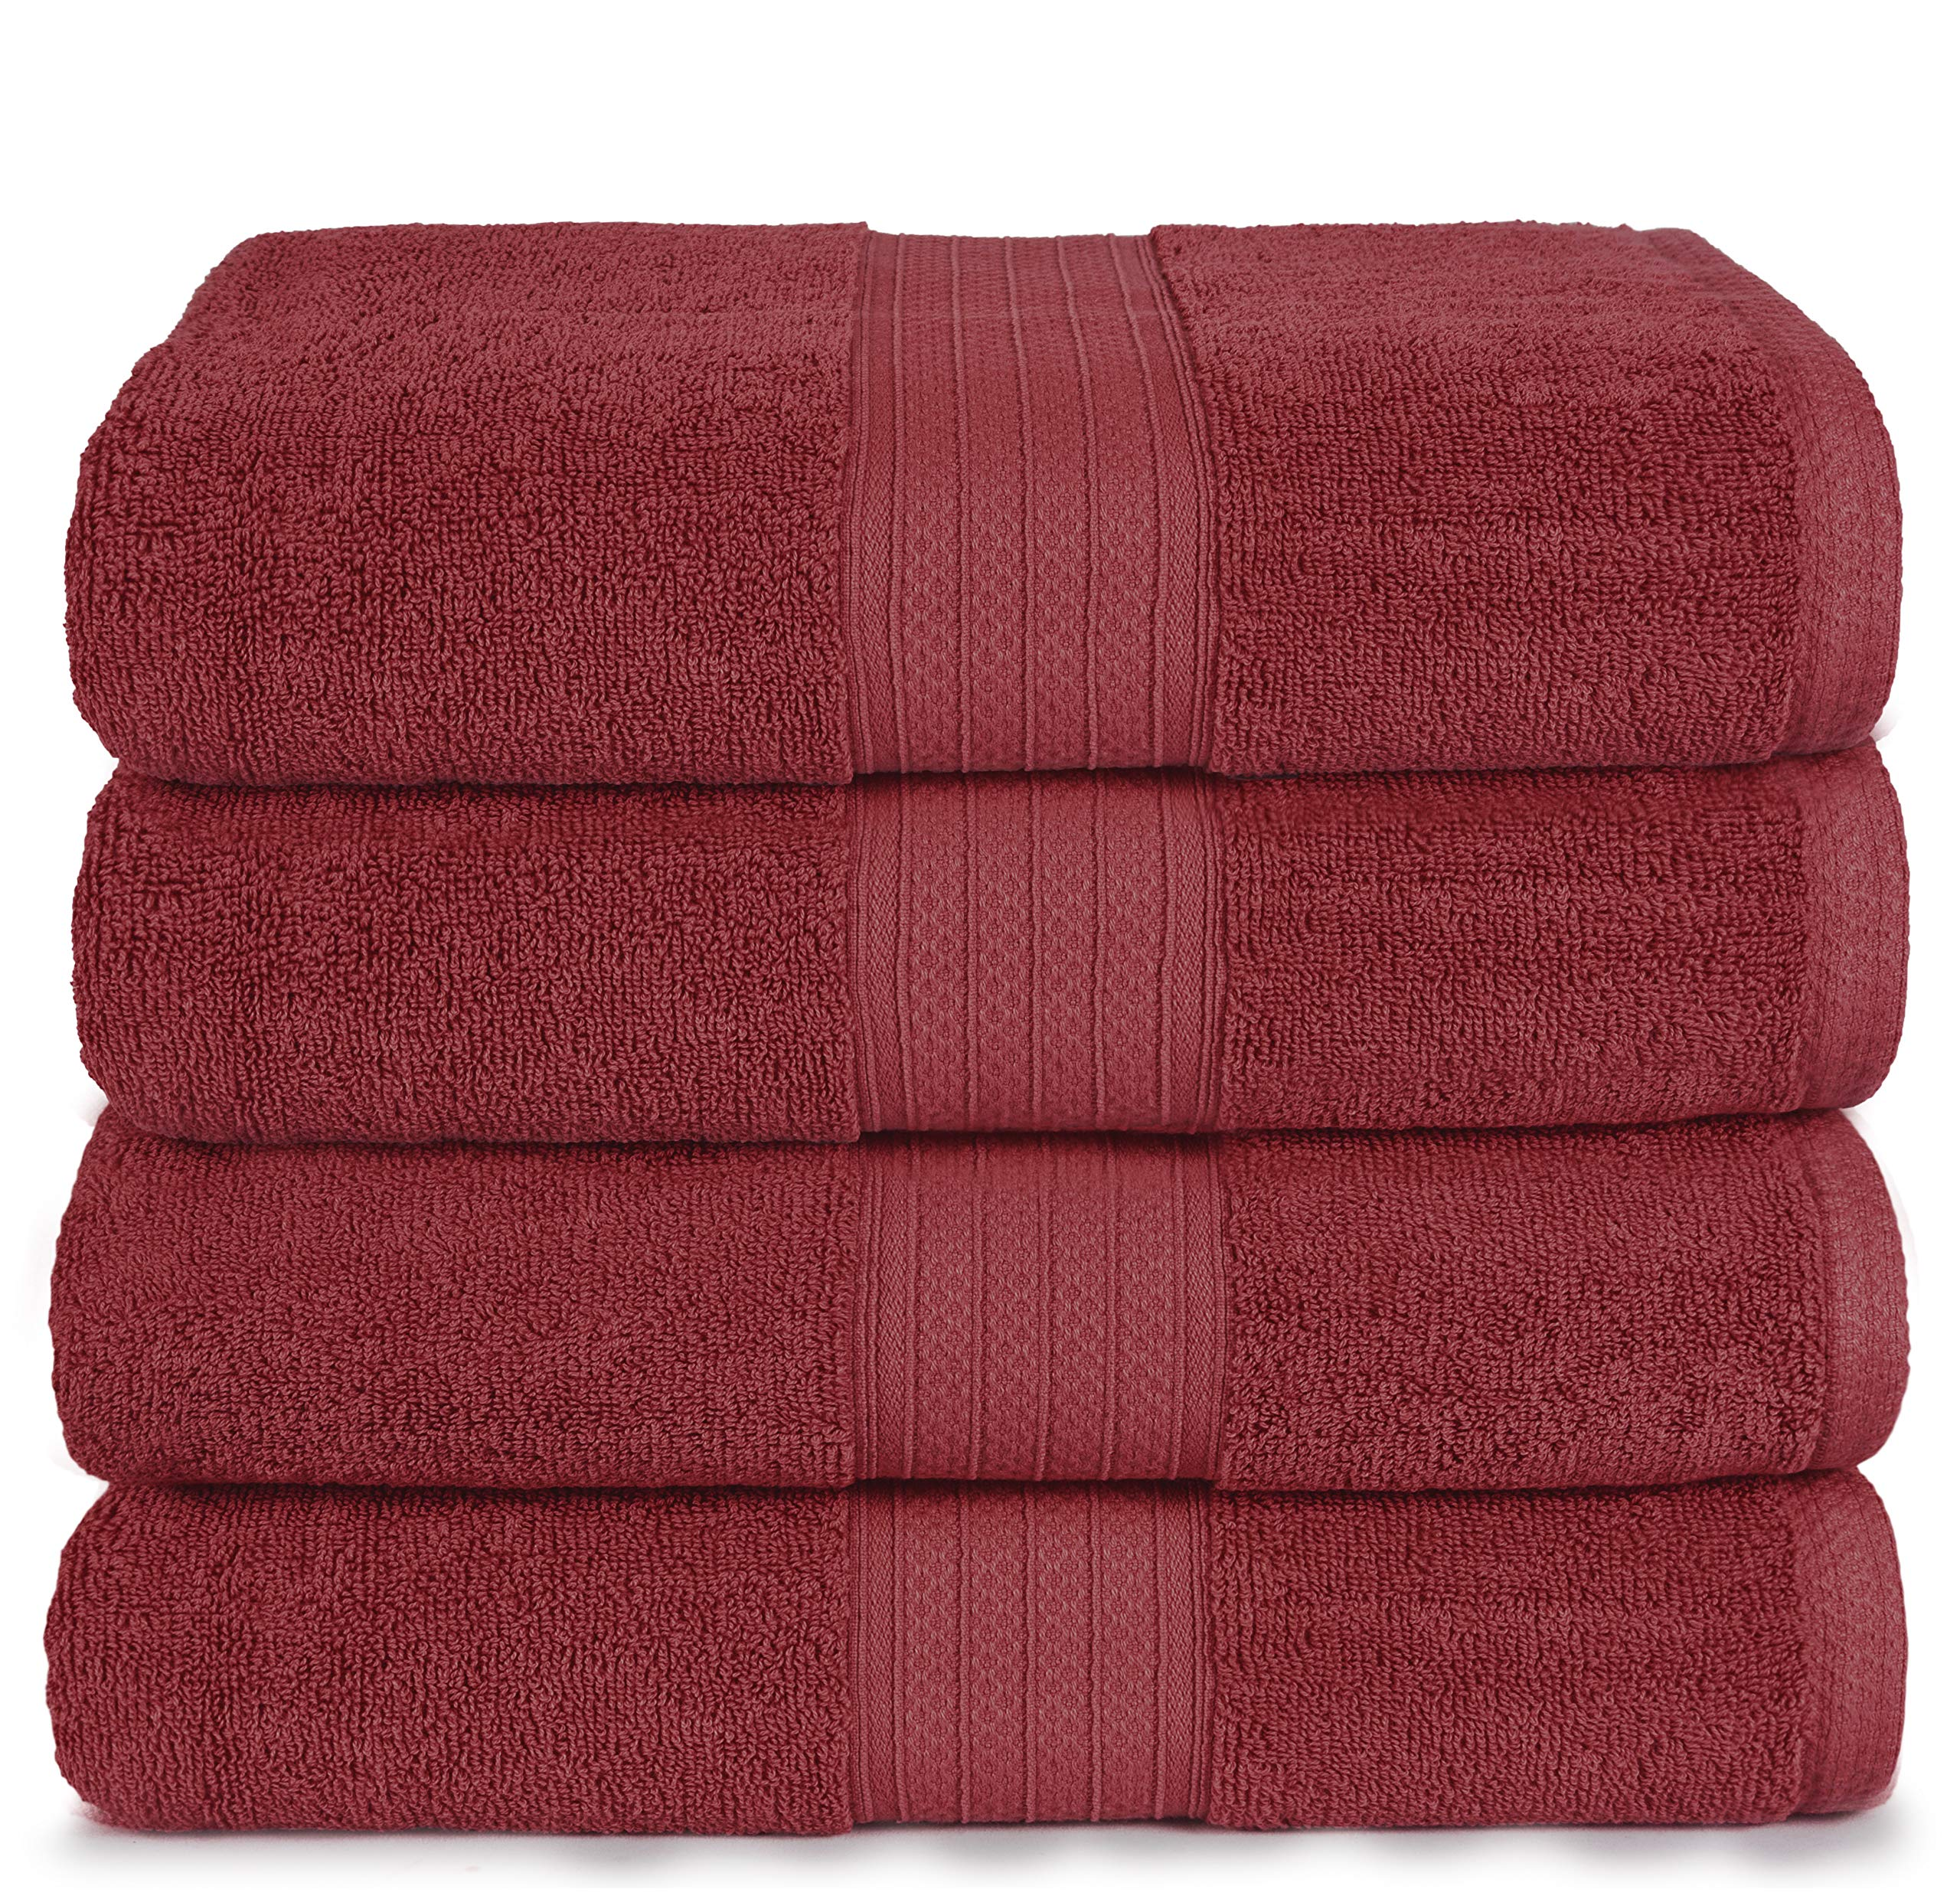 GLAMBURG 4 Pack Bath Towel Set, 100% Combed Cotton Large Bath Towels, Gym Towels 27''x54'' - 600 GSM Luxury Hotel Quality Ultra Soft Super Absorbent Towels for Bathroom - Burgundy by GLAMBURG